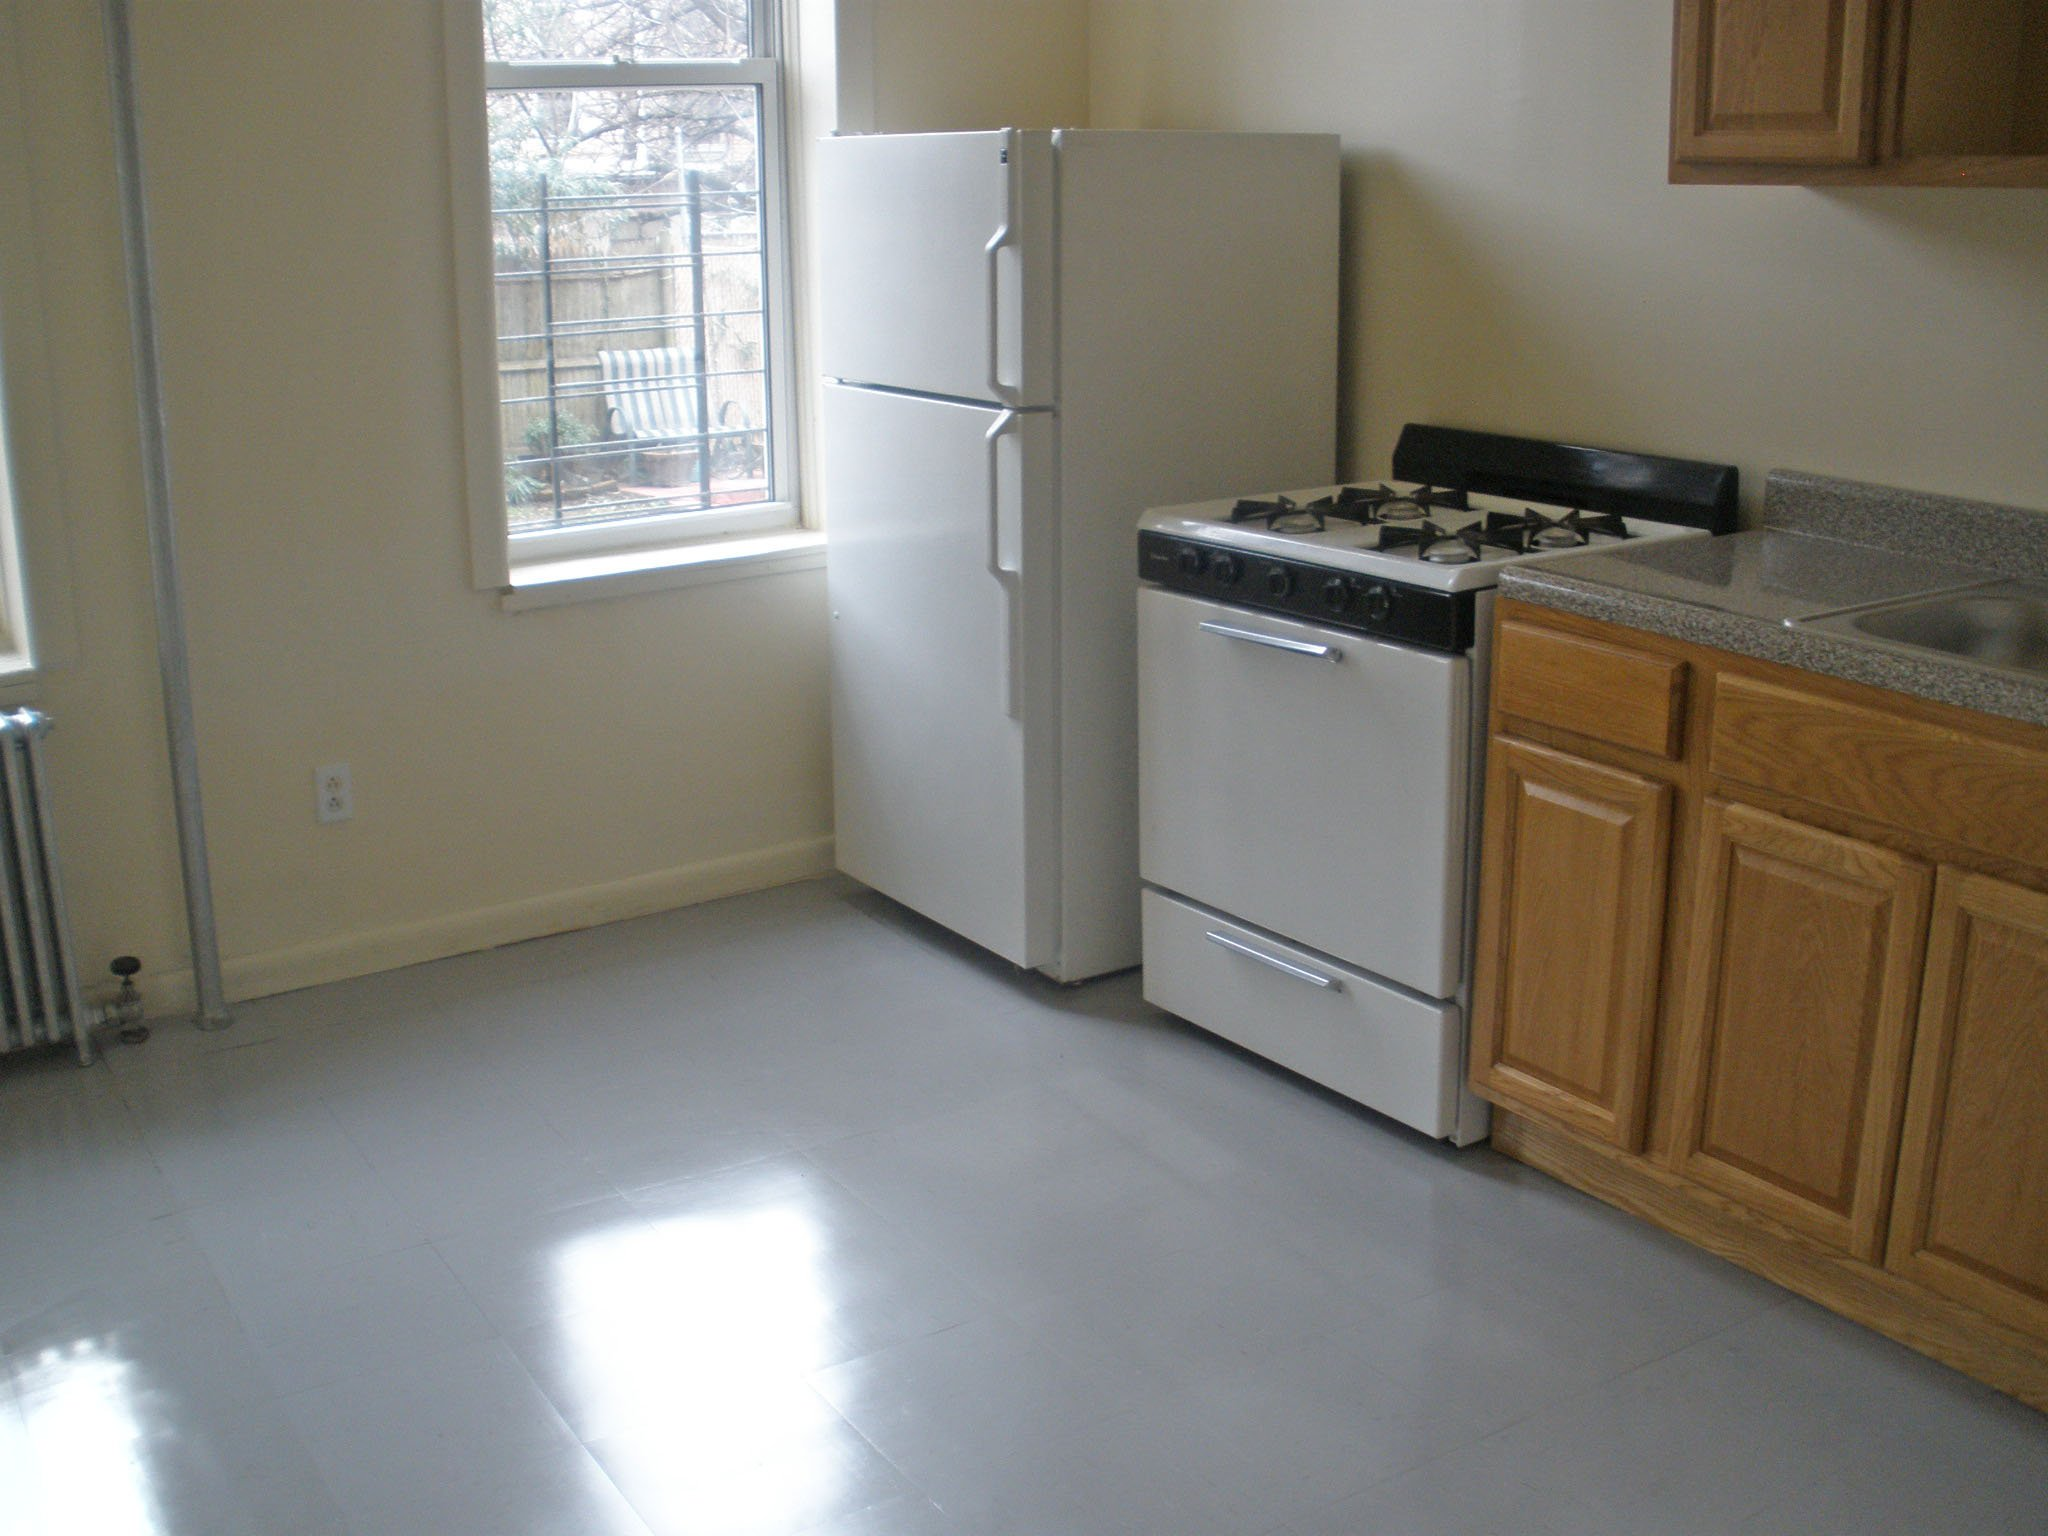 2 Bedroom Apartments For Rent Of Bedford Stuyvesant 2 Bedroom Apartment For Rent Brooklyn